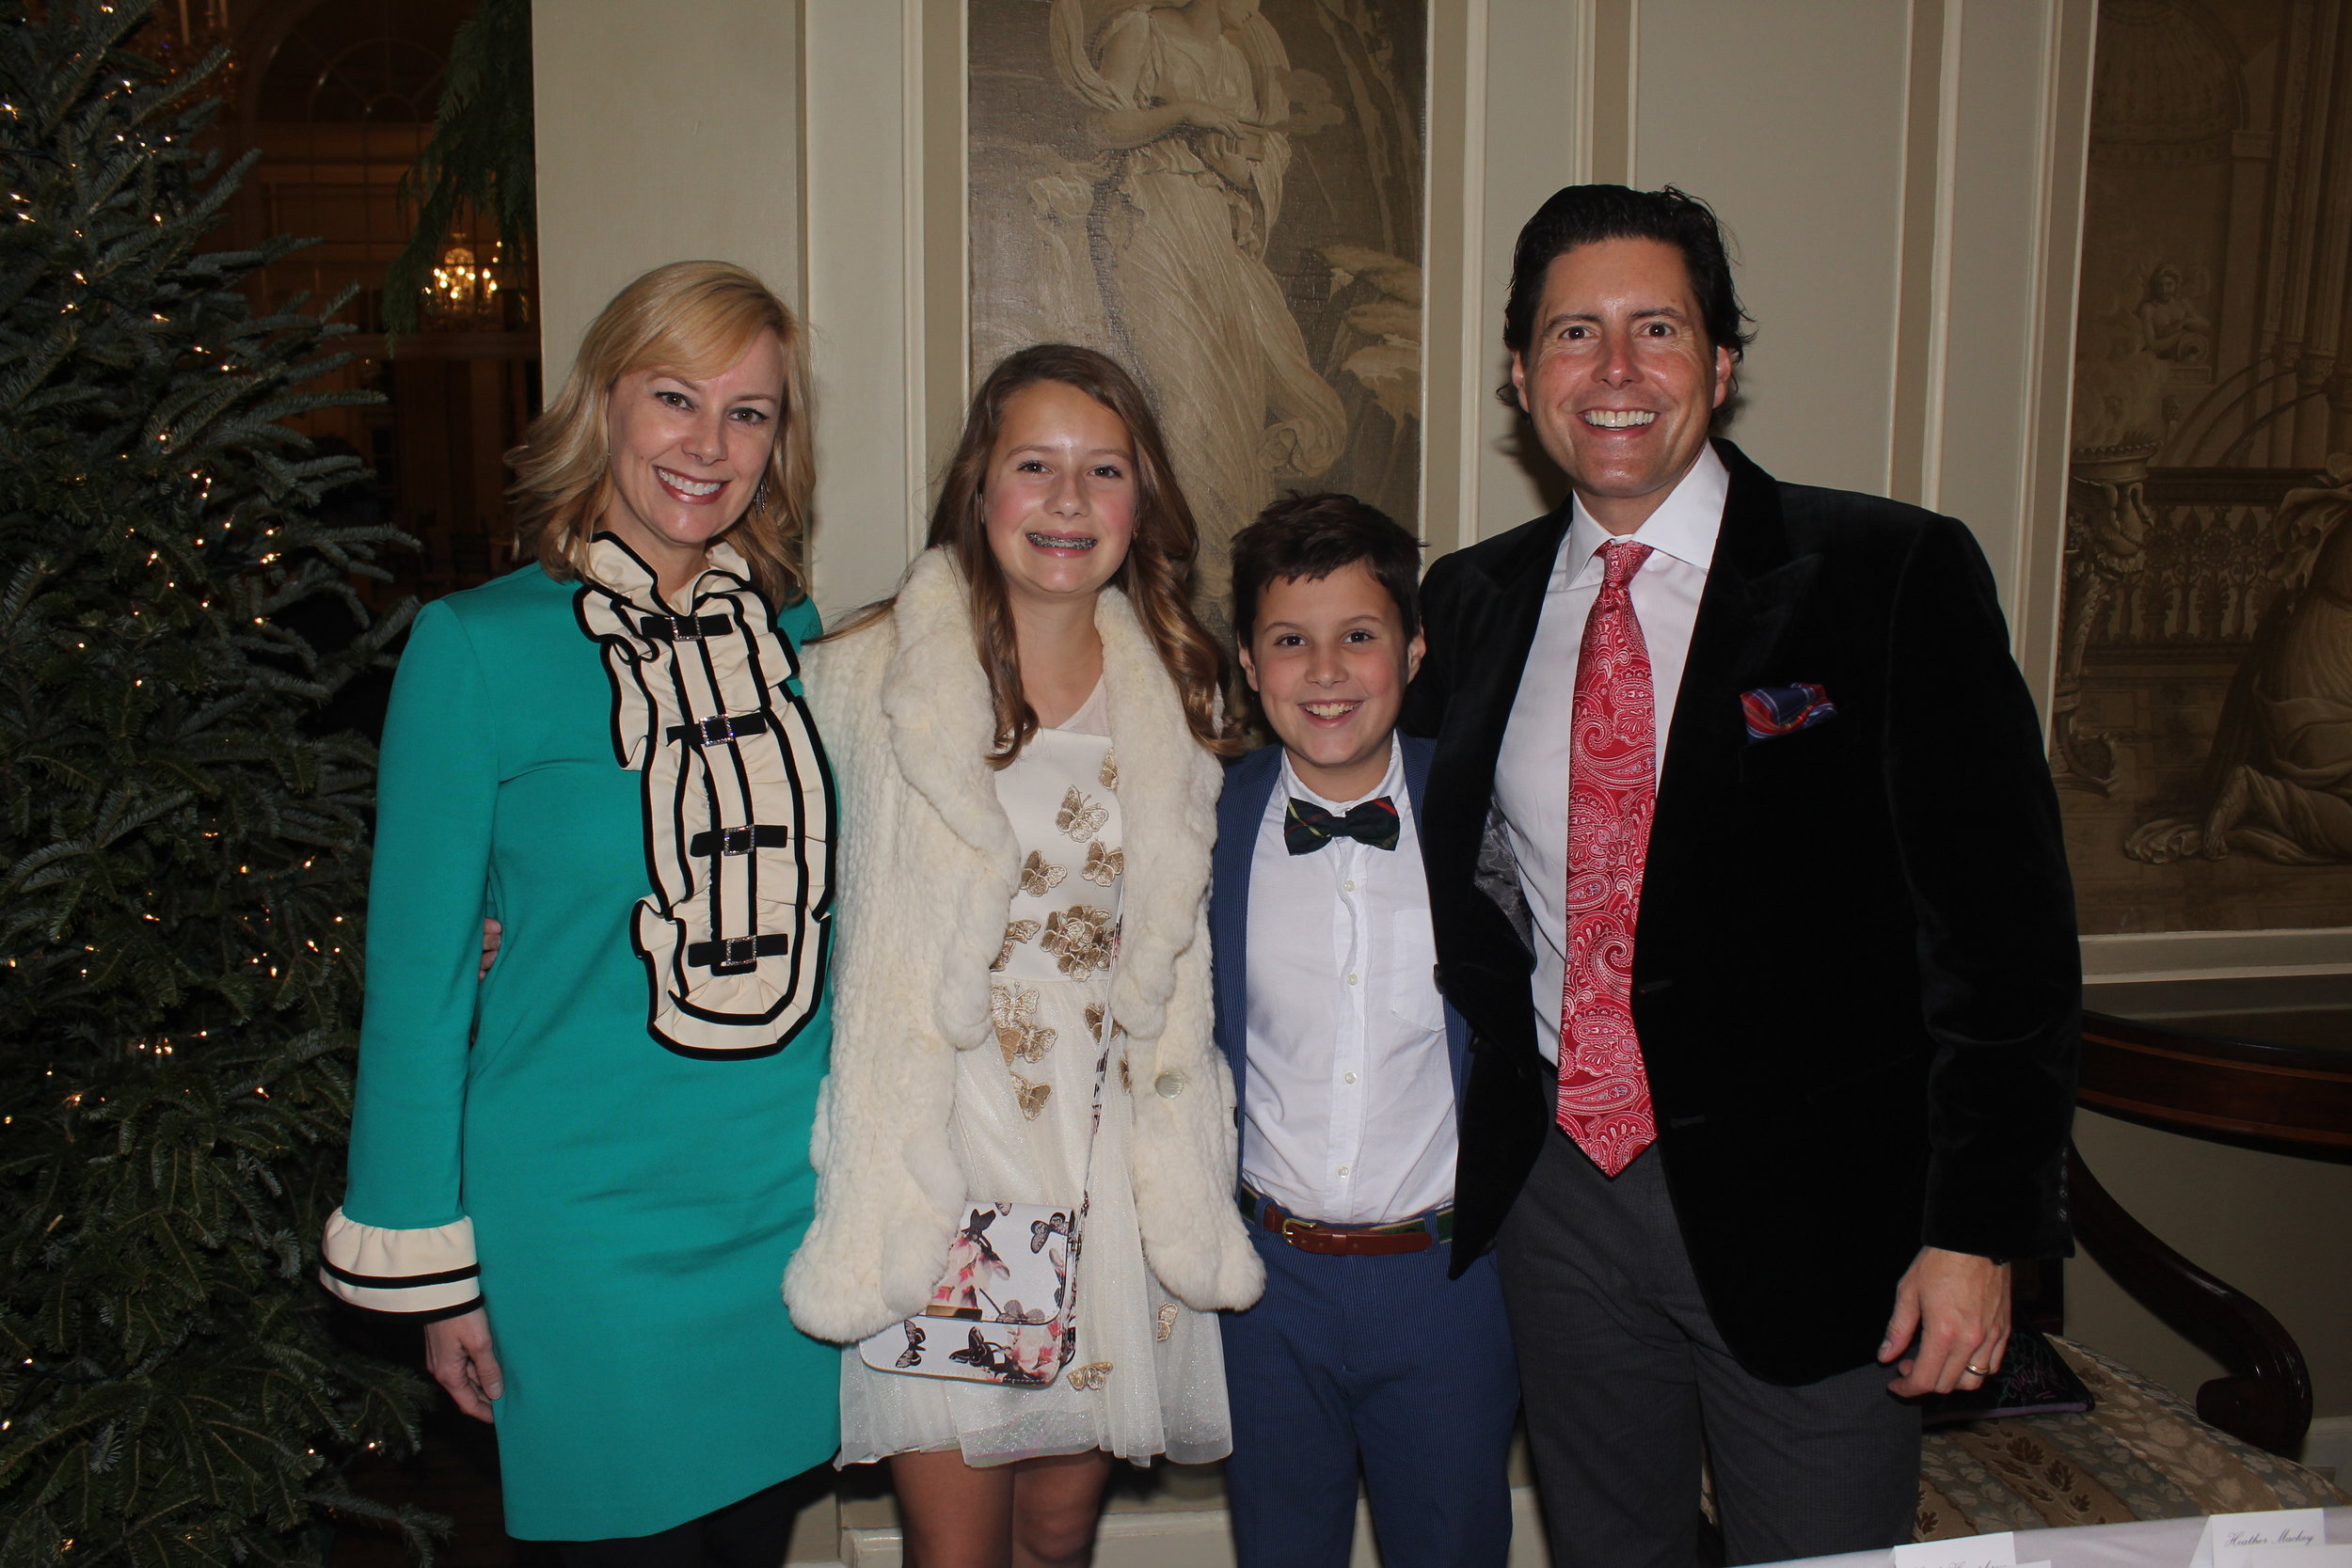 Ashley Anderson Mattei, Scott Mattei and their children were among the families at The Nutcracker Ball.